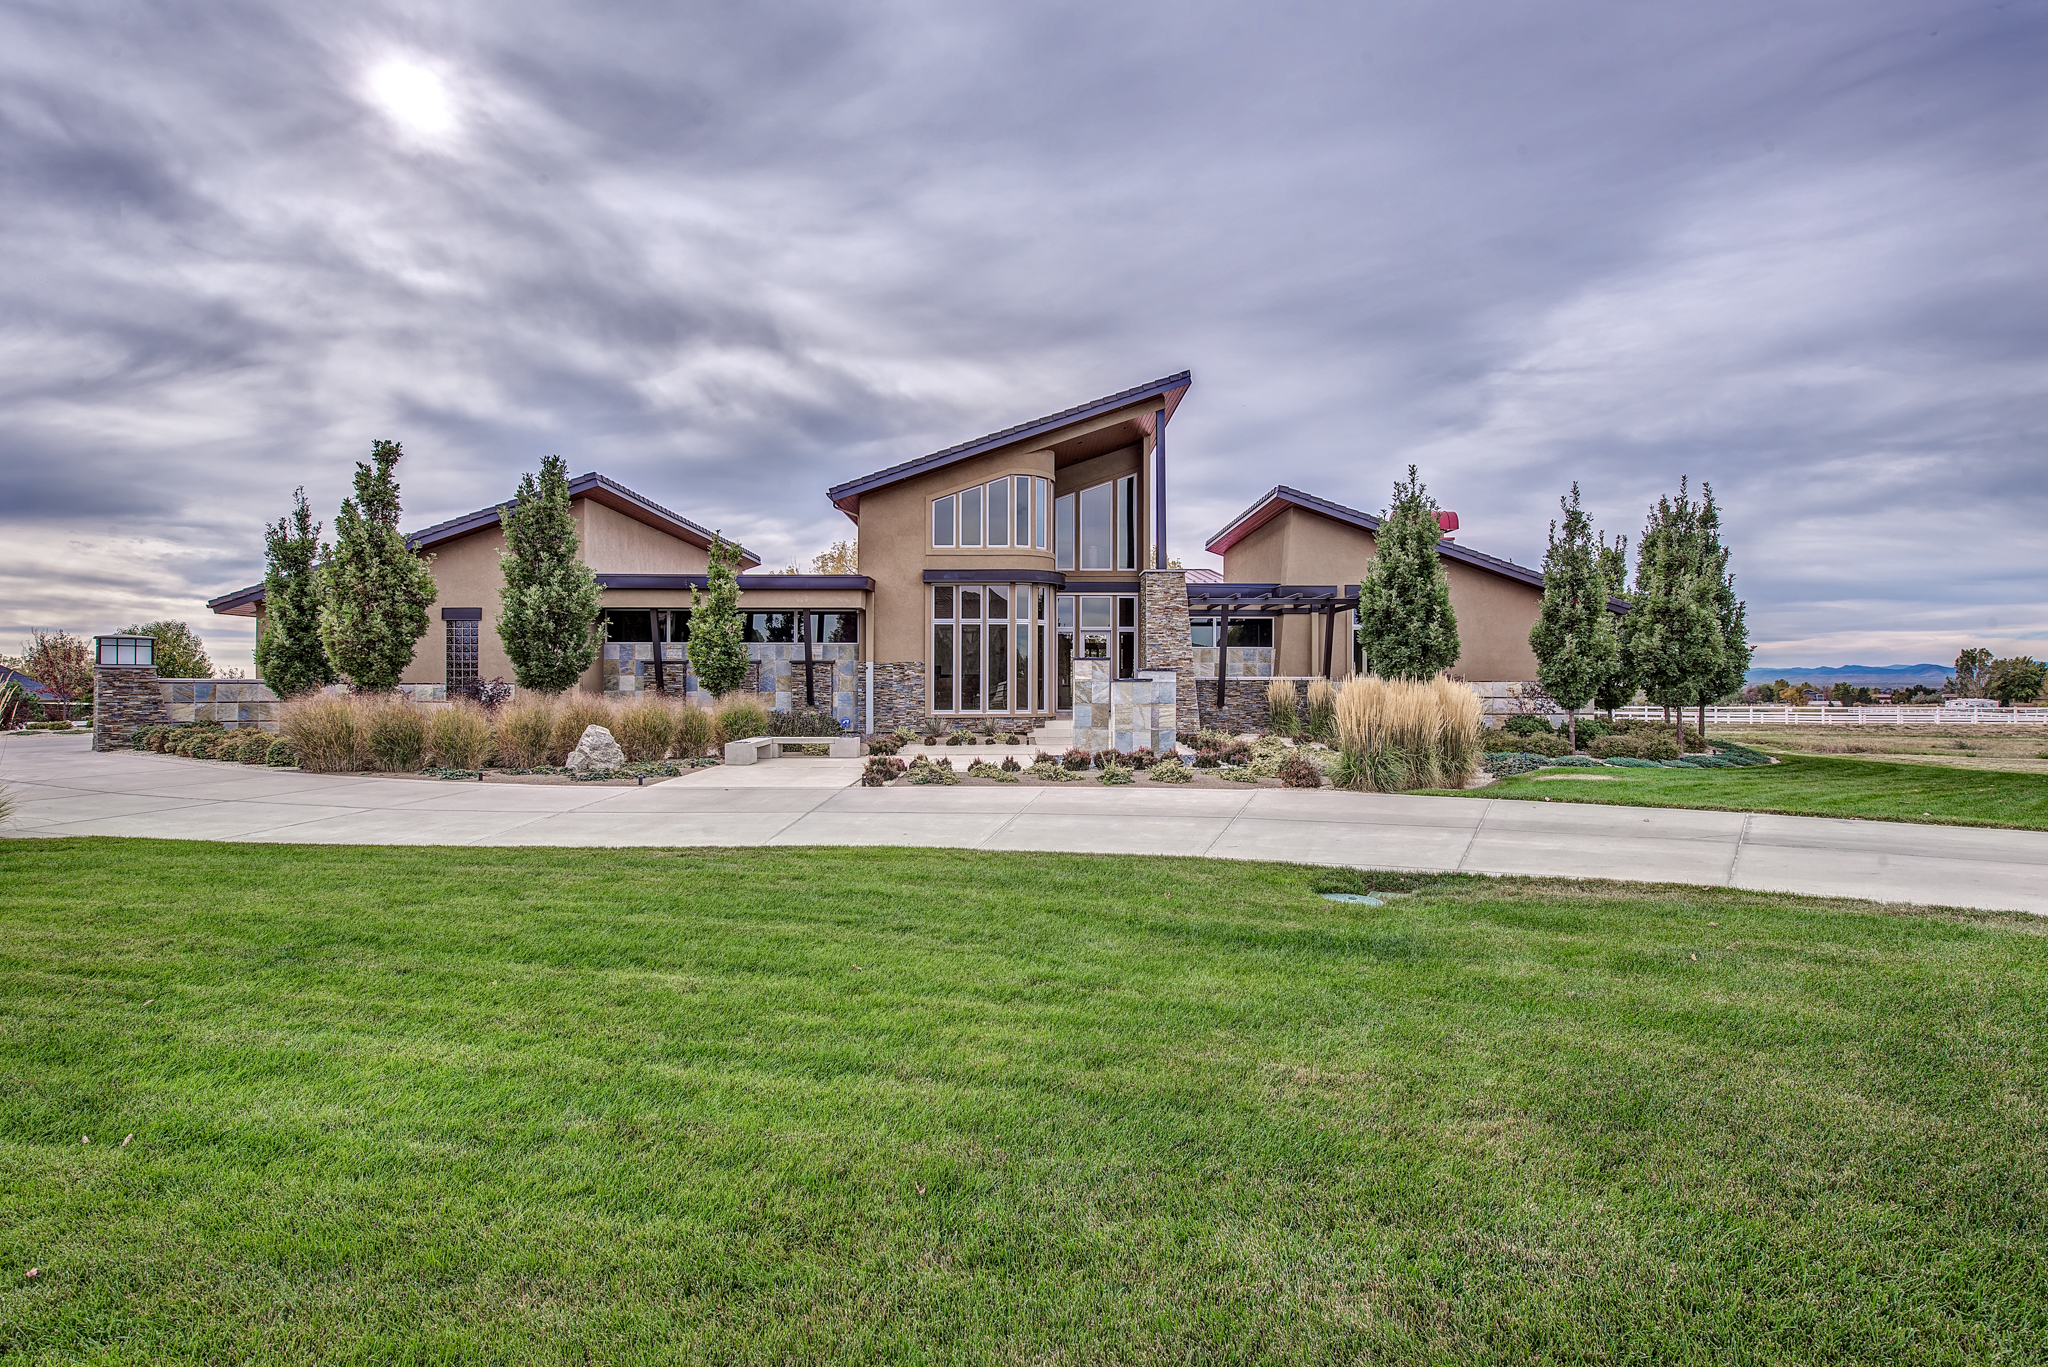 15000 Prairie Place, Broomfield. Sold for $2,100,000 by LIV Sotheby's International Realty's MileHiModern team.